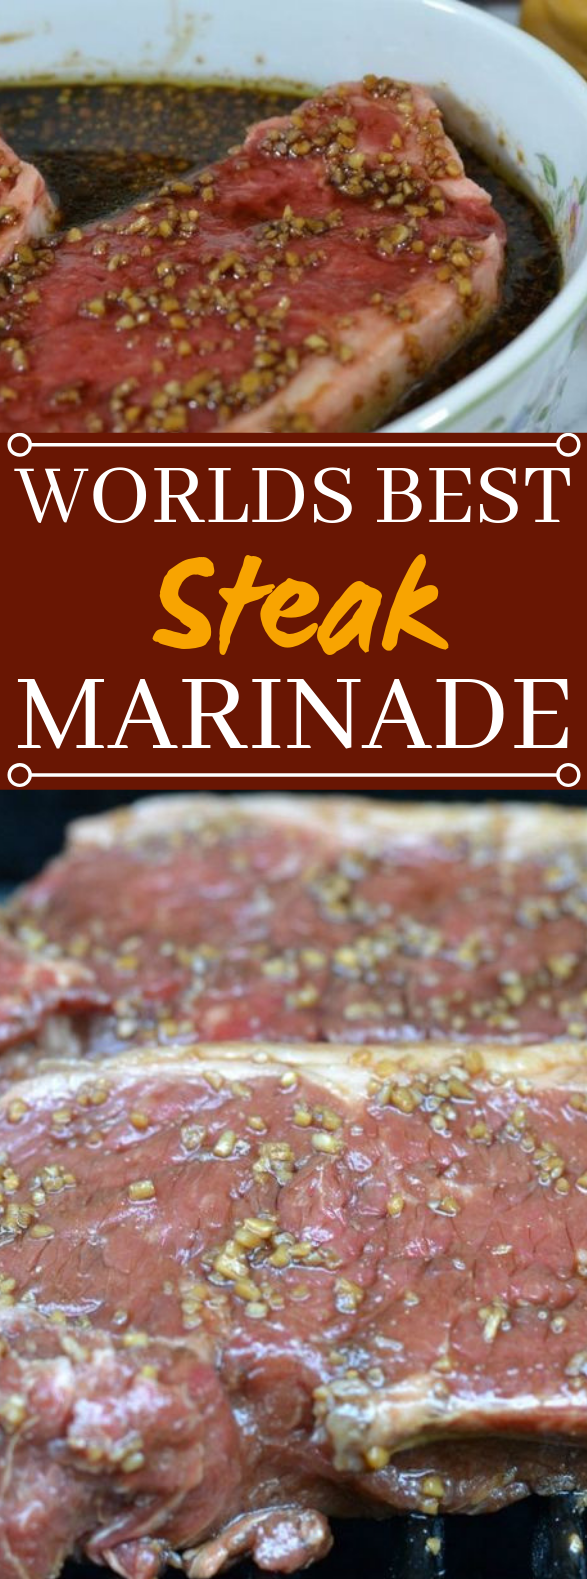 Worlds Best Steak Marinade #dinner #steak